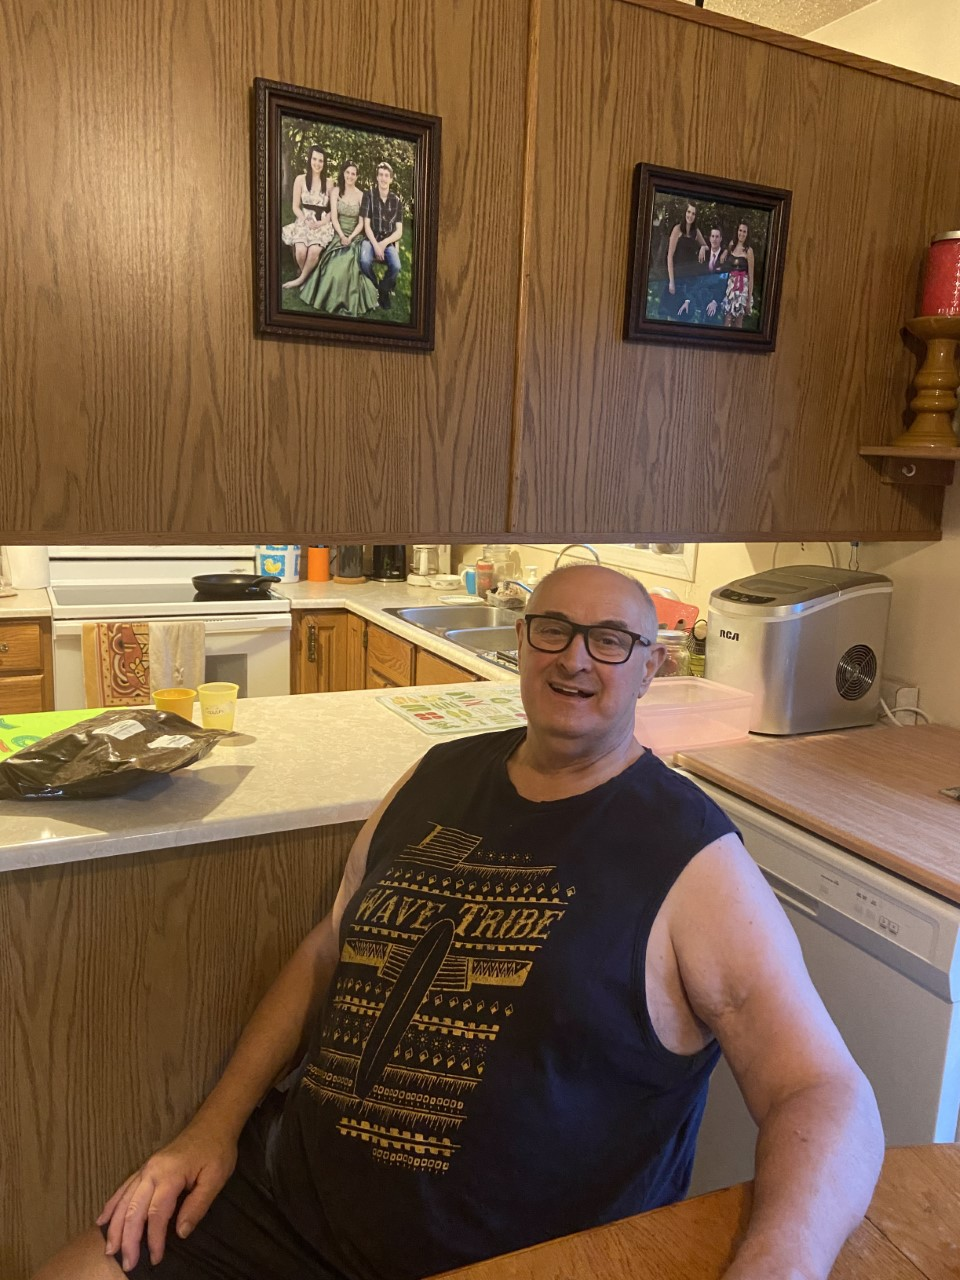 Richard Sommerfeld is recovering at home after staying in three different hospitals over 146 days after catching COVID-19.